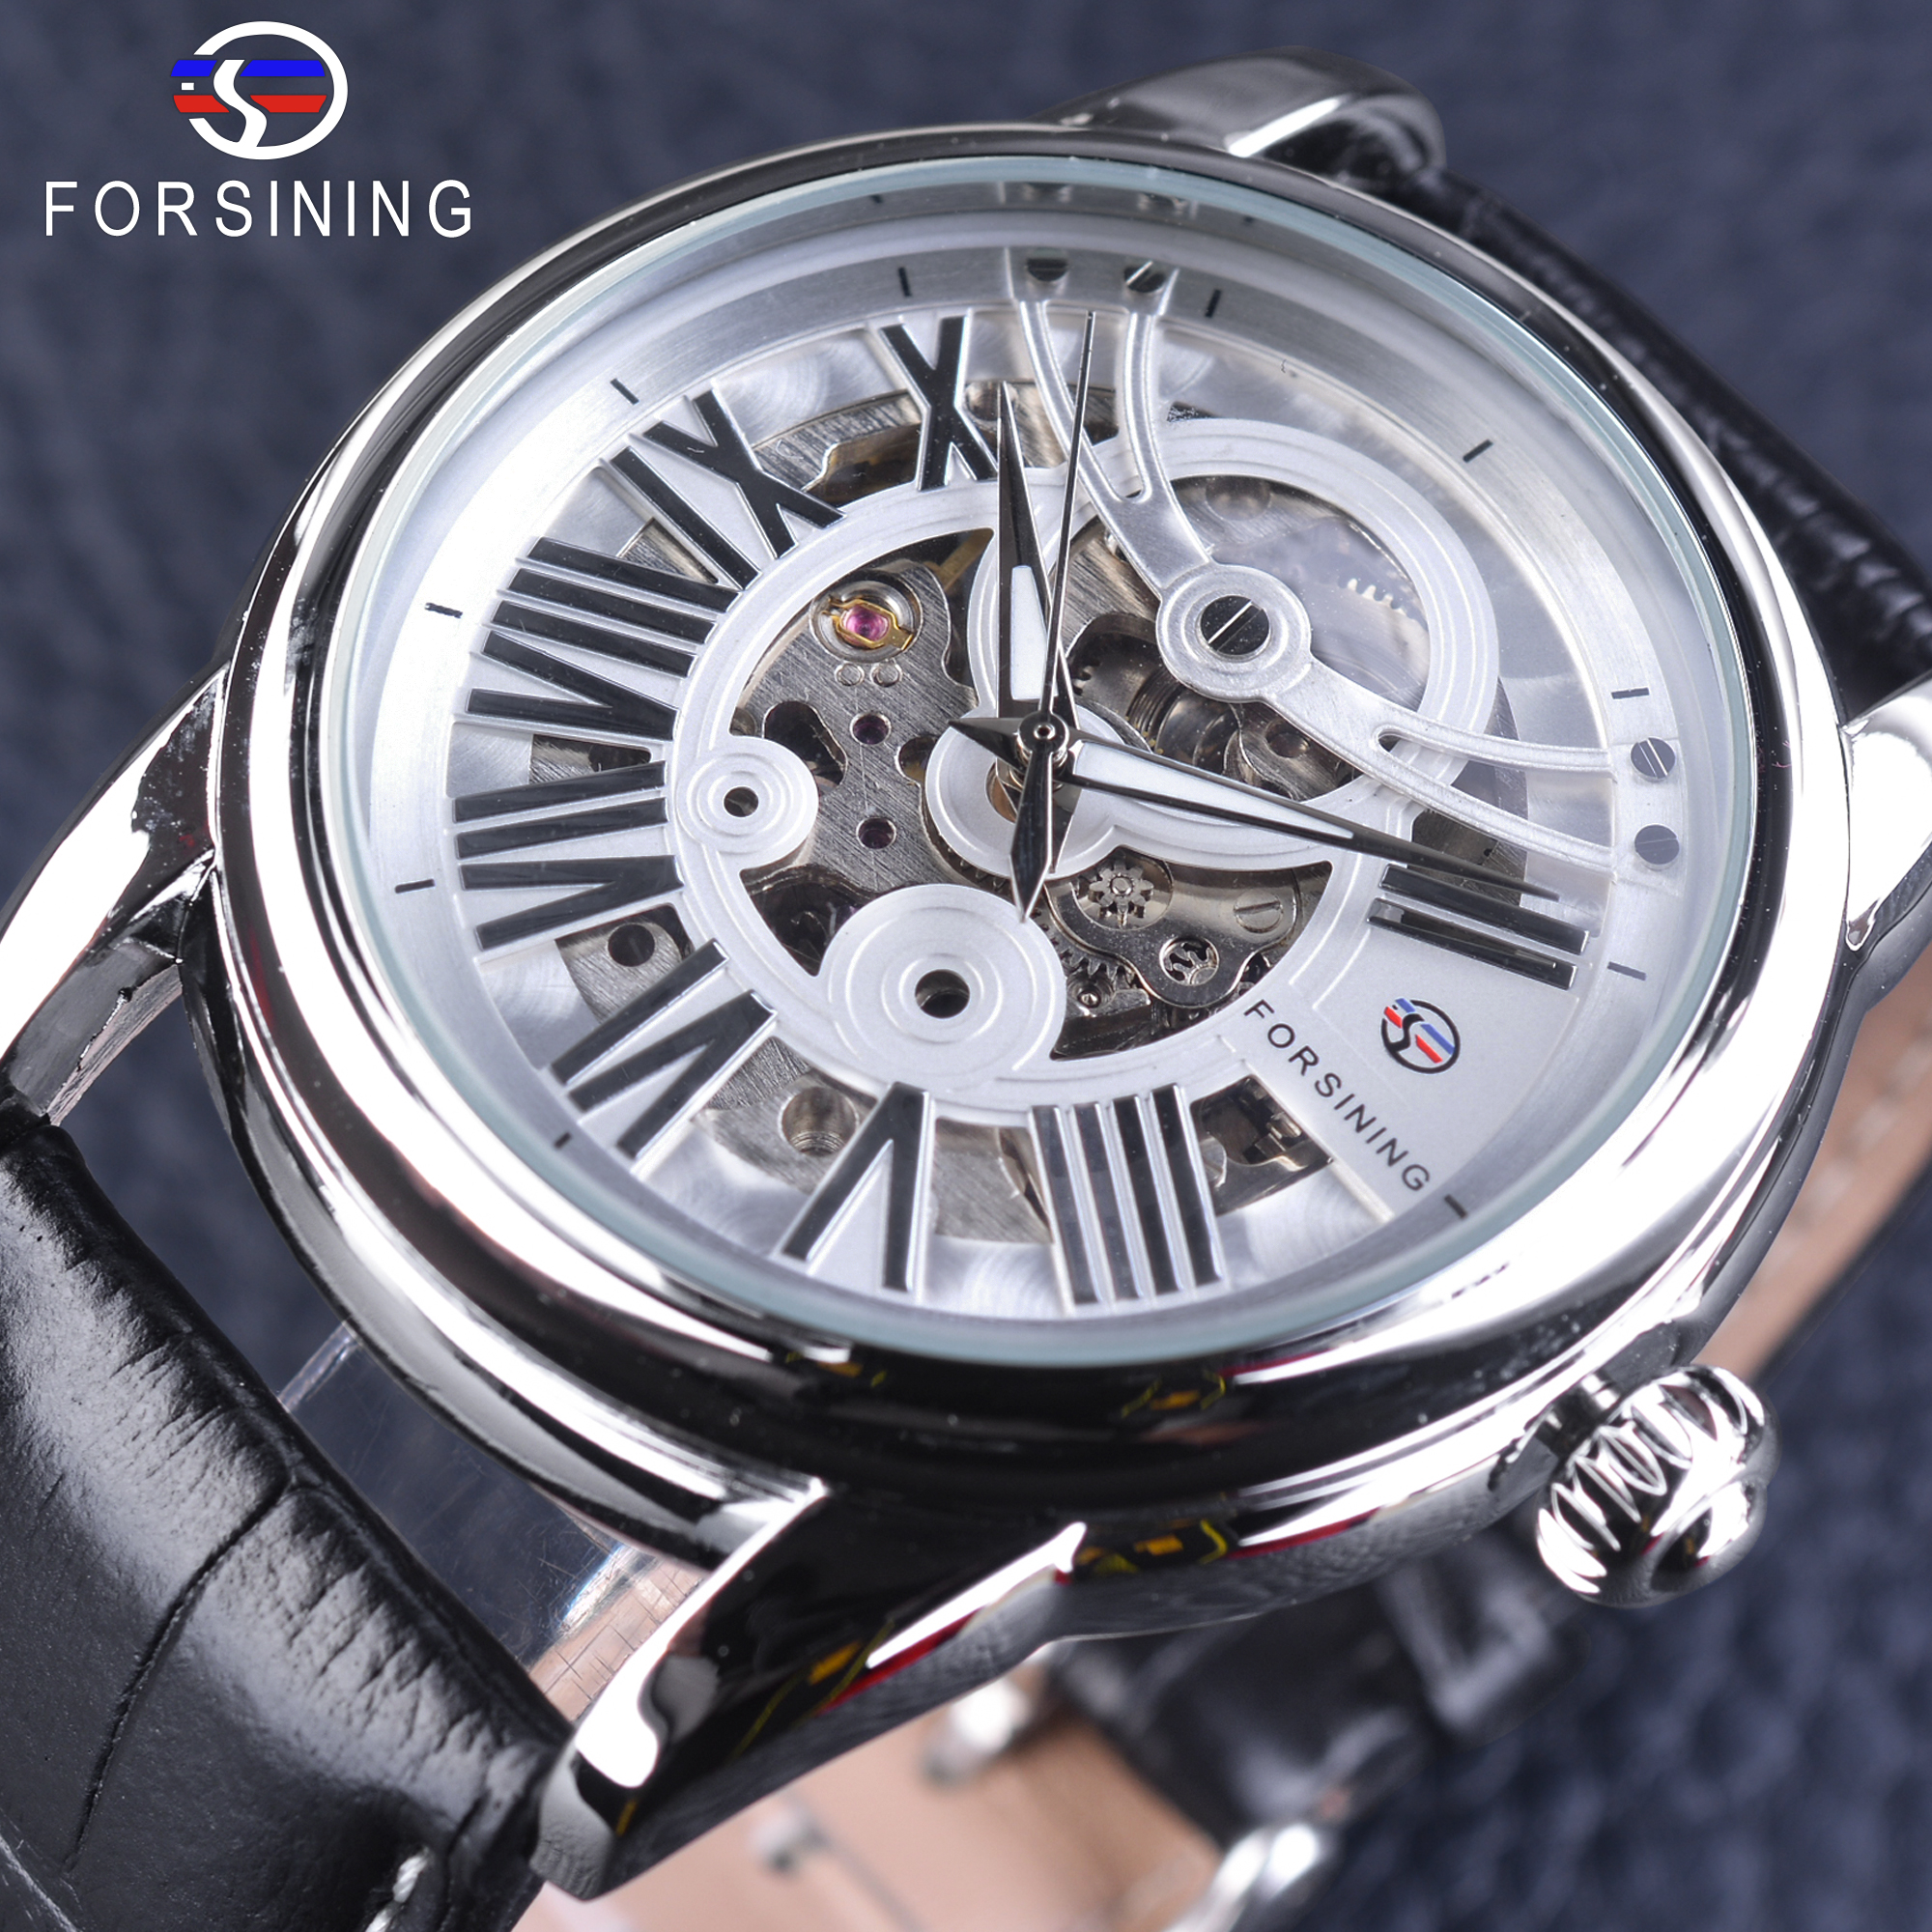 Forsining Official Exclusive Sale Roman Retro Genuine Leather Mens Automatic Mechanical Watch White Dial Silver Stainless SteelForsining Official Exclusive Sale Roman Retro Genuine Leather Mens Automatic Mechanical Watch White Dial Silver Stainless Steel